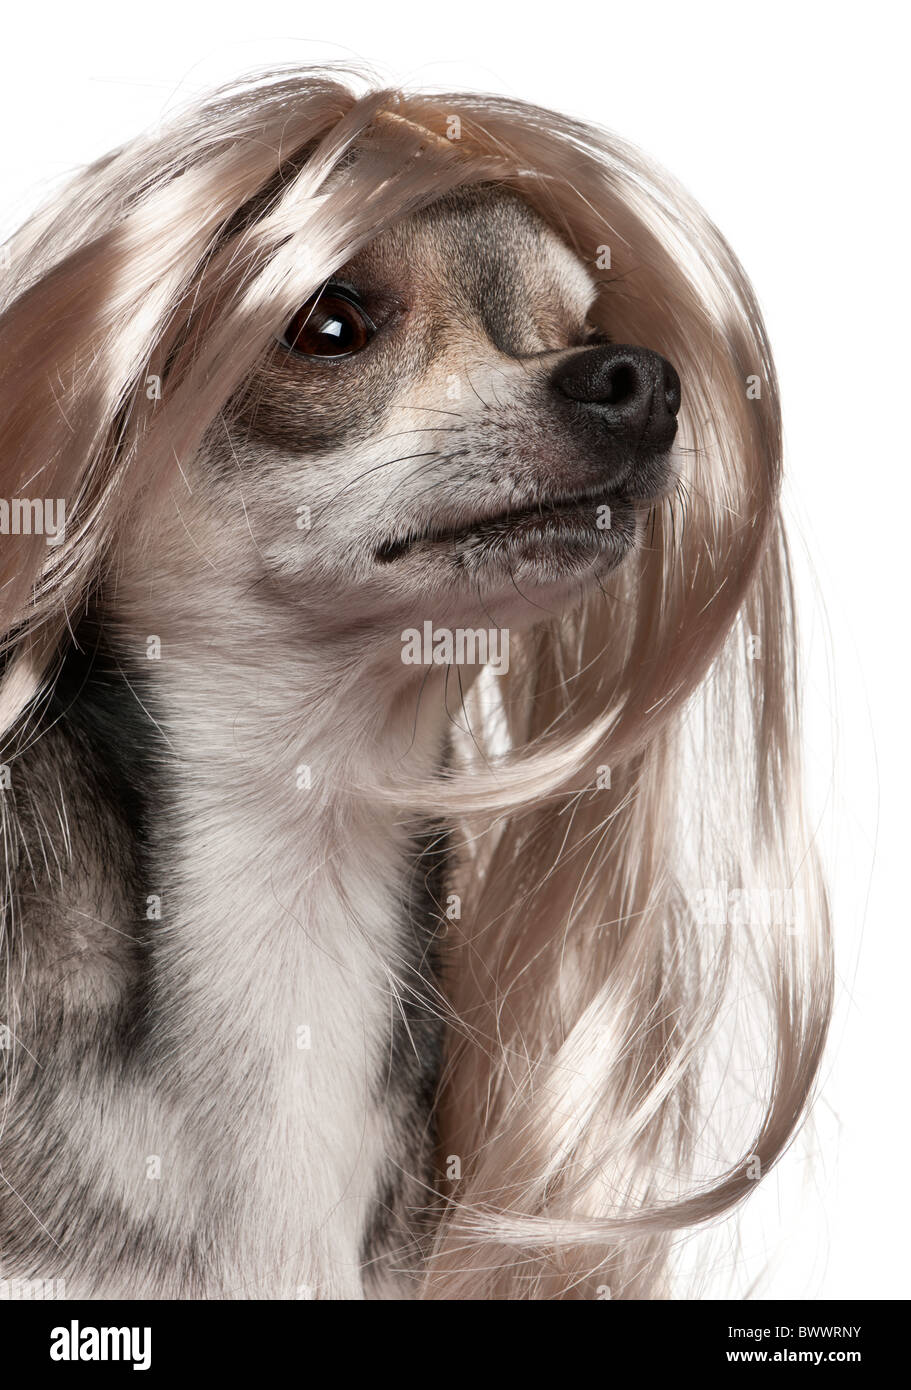 Close-up of Chihuahua with long hair wig, 3 years old, in front of white background - Stock Image